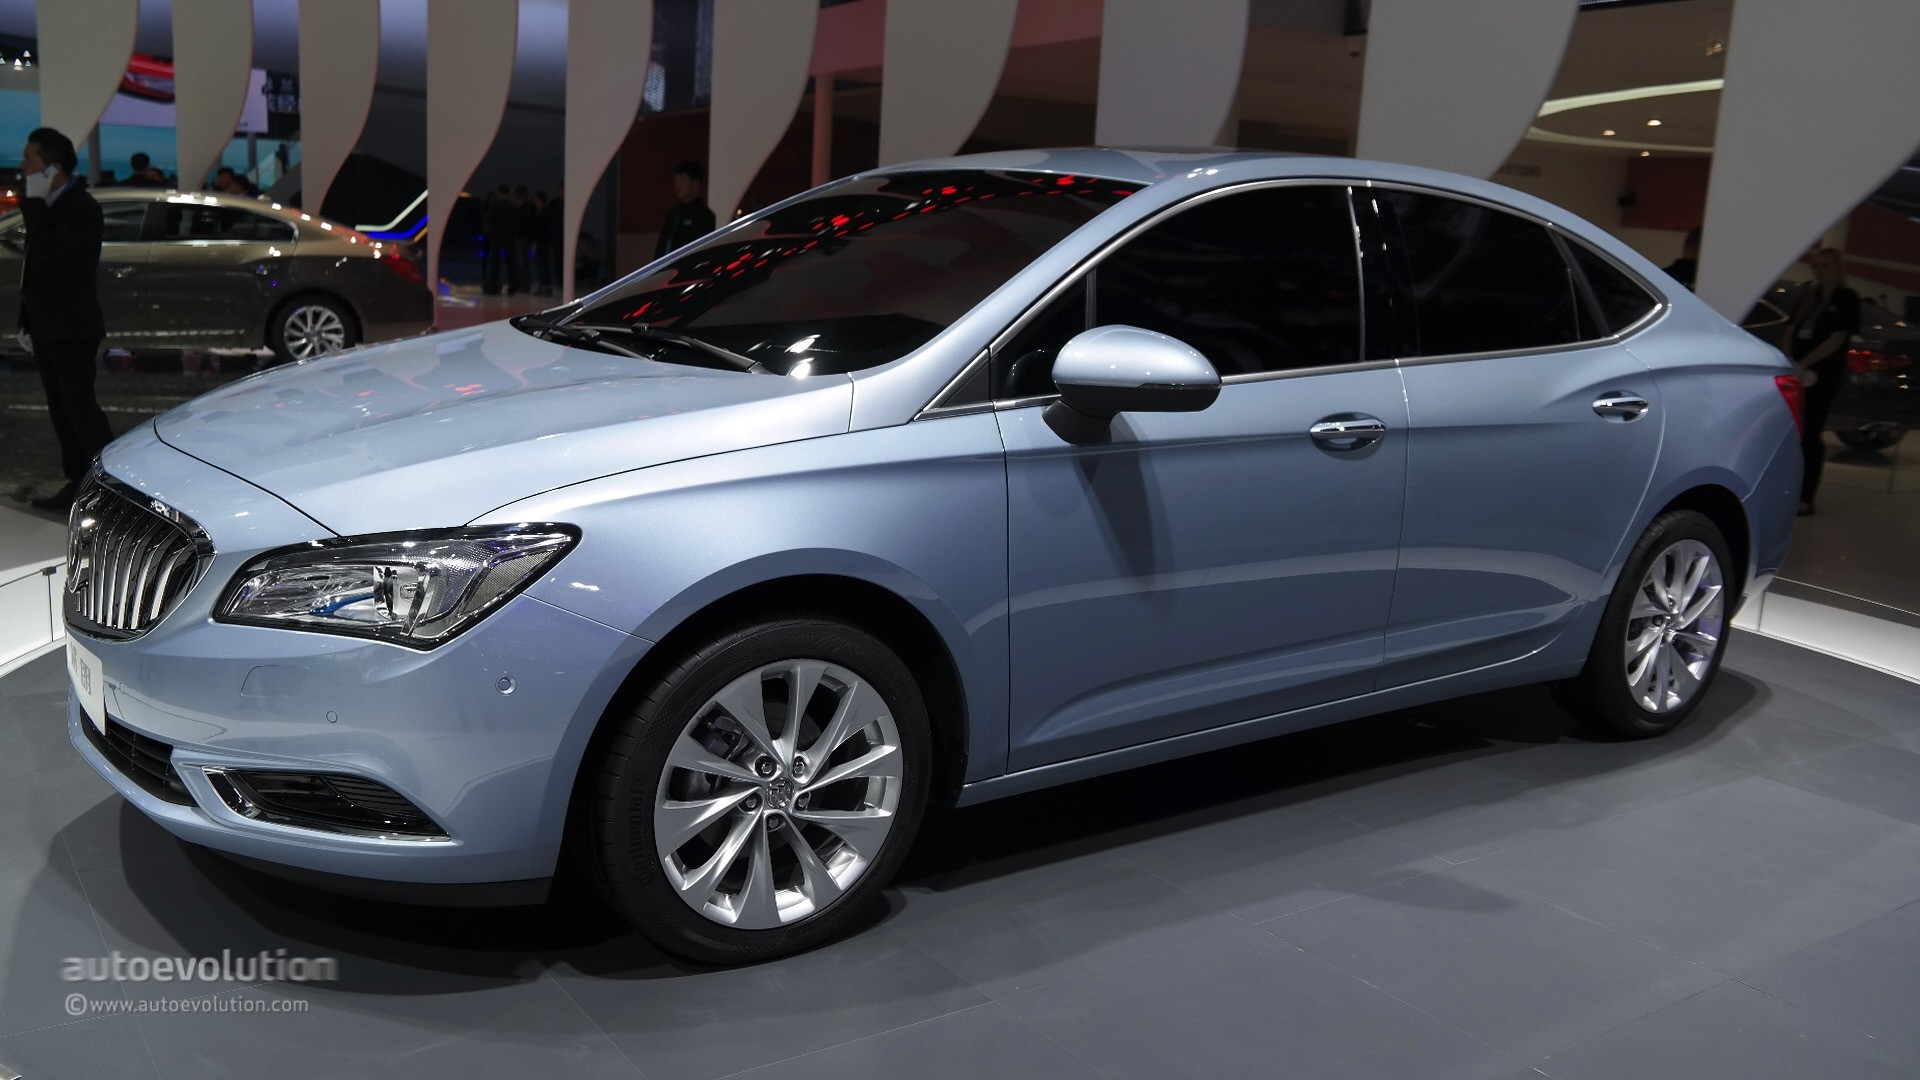 2016 buick verano doesn t feel like a buick at the shanghai auto show 2015 autoevolution. Black Bedroom Furniture Sets. Home Design Ideas